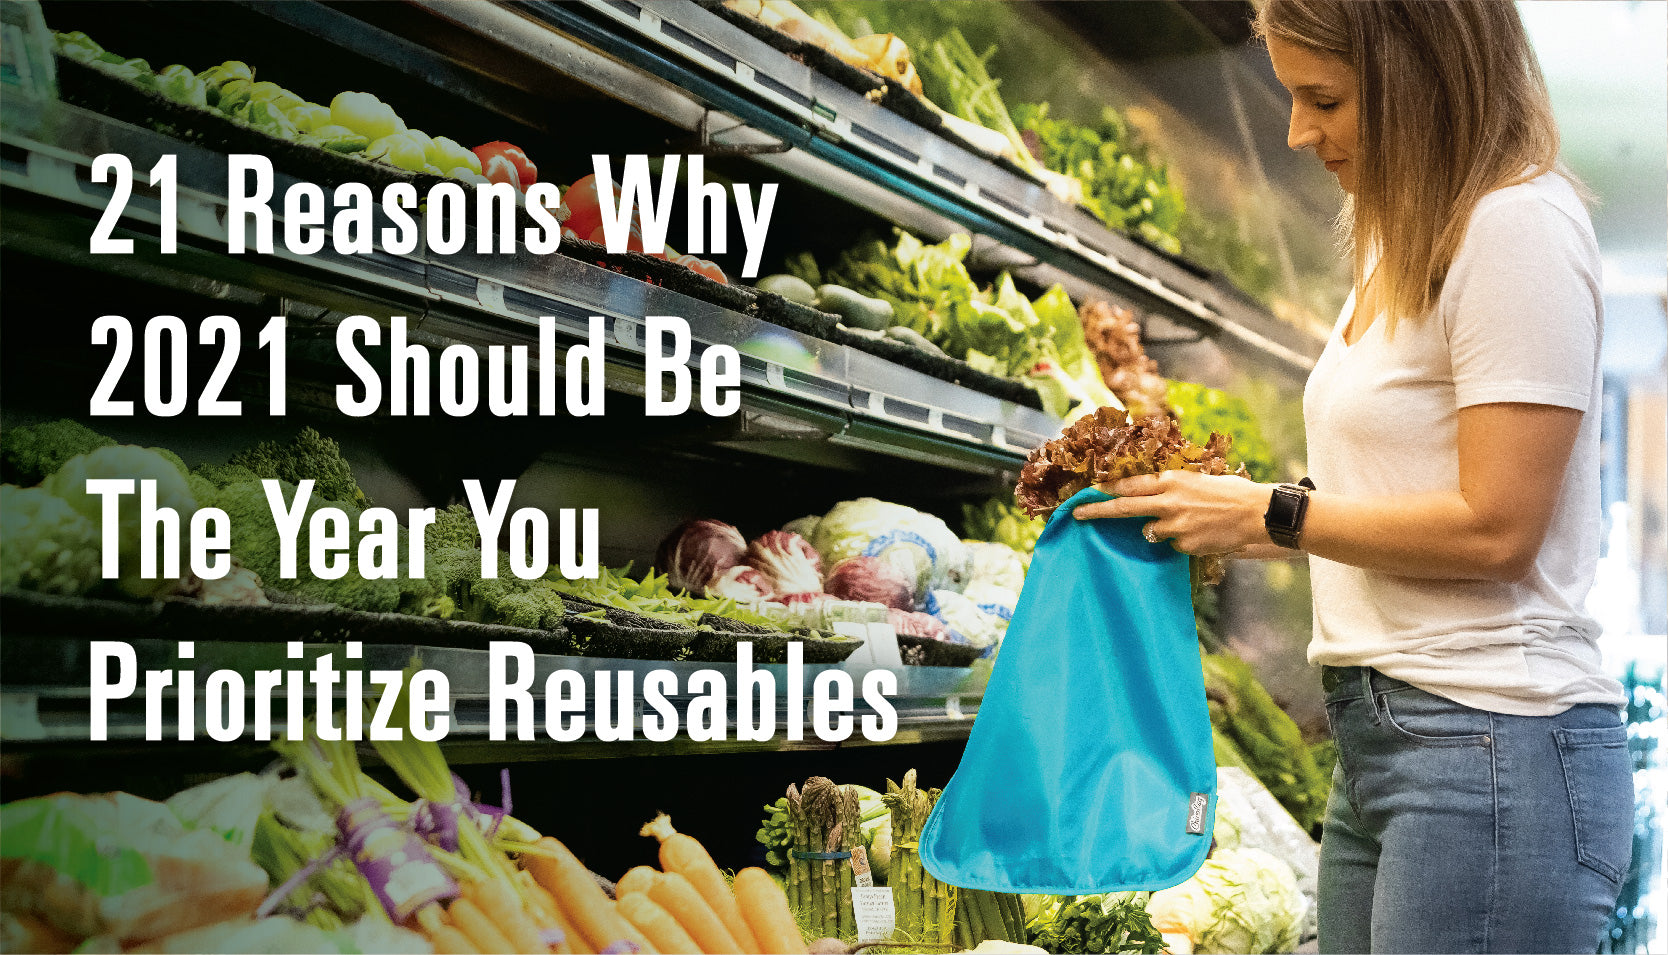 21 Reasons Why 2021 Should Be the Year You Prioritize Reusables